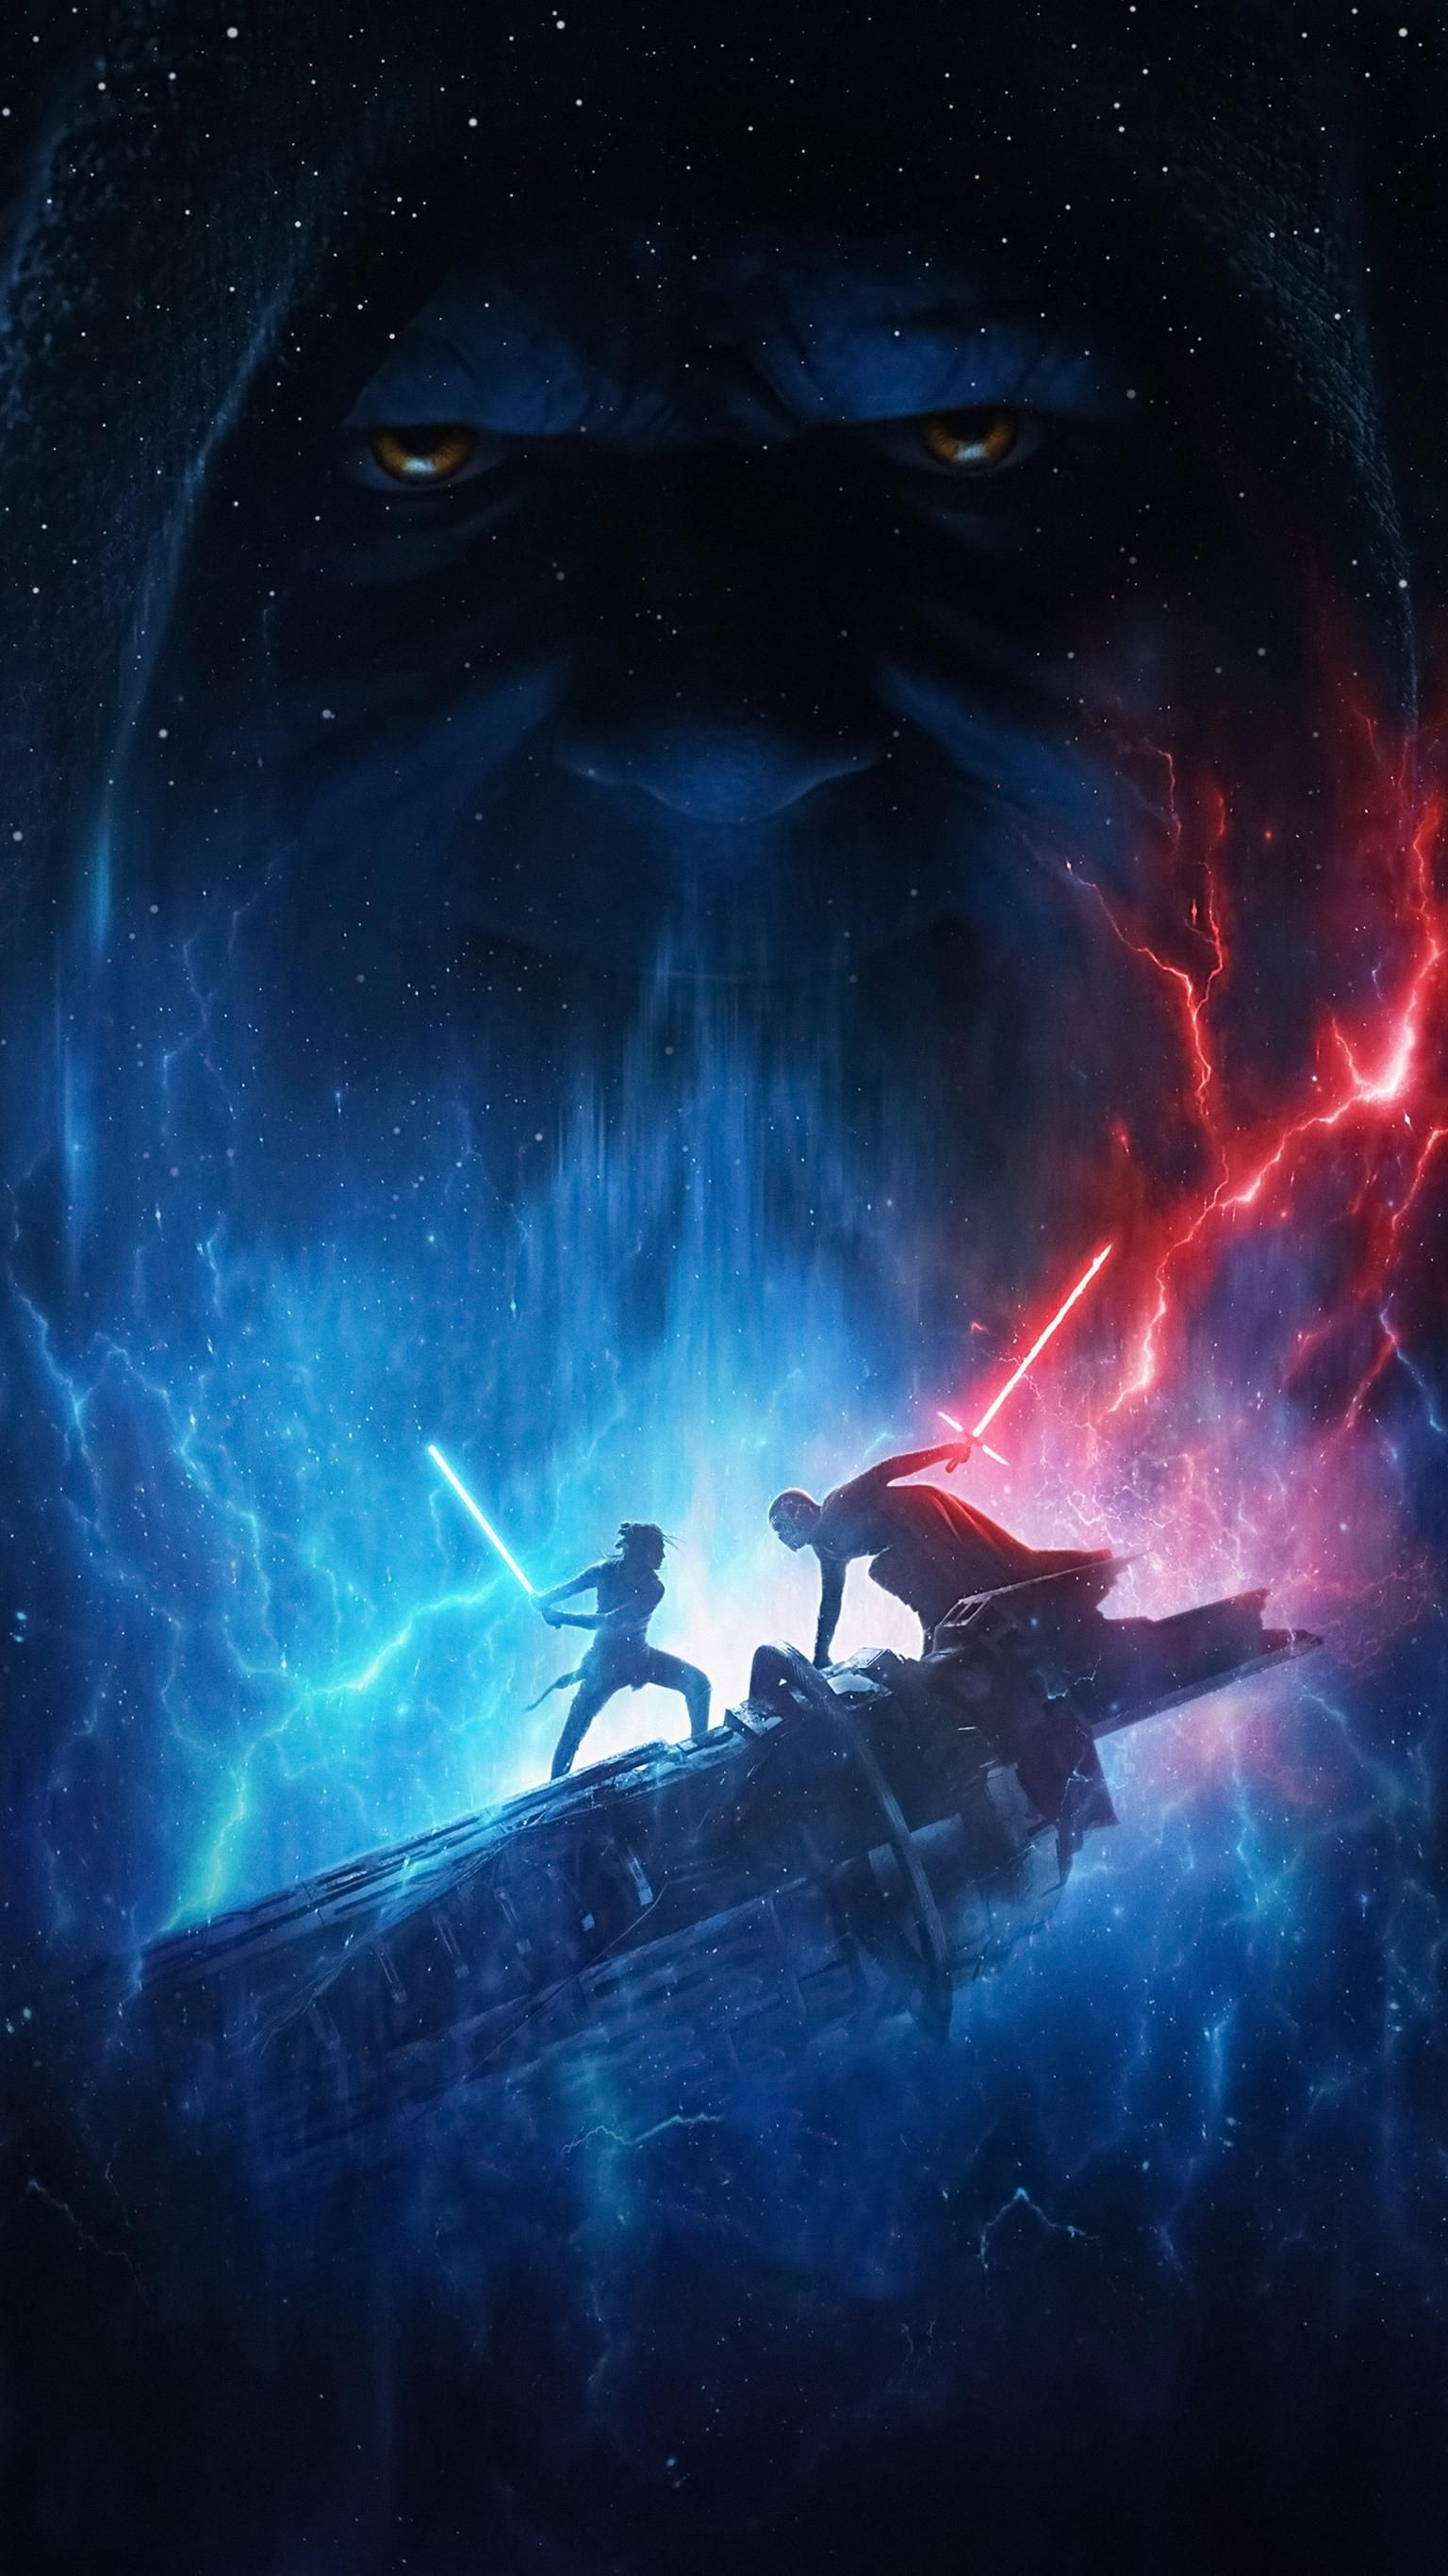 Moviemania Textless High Resolution Movie Wallpapers Star Wars Wallpaper Iphone Star Wars Wallpaper Star Wars Pictures